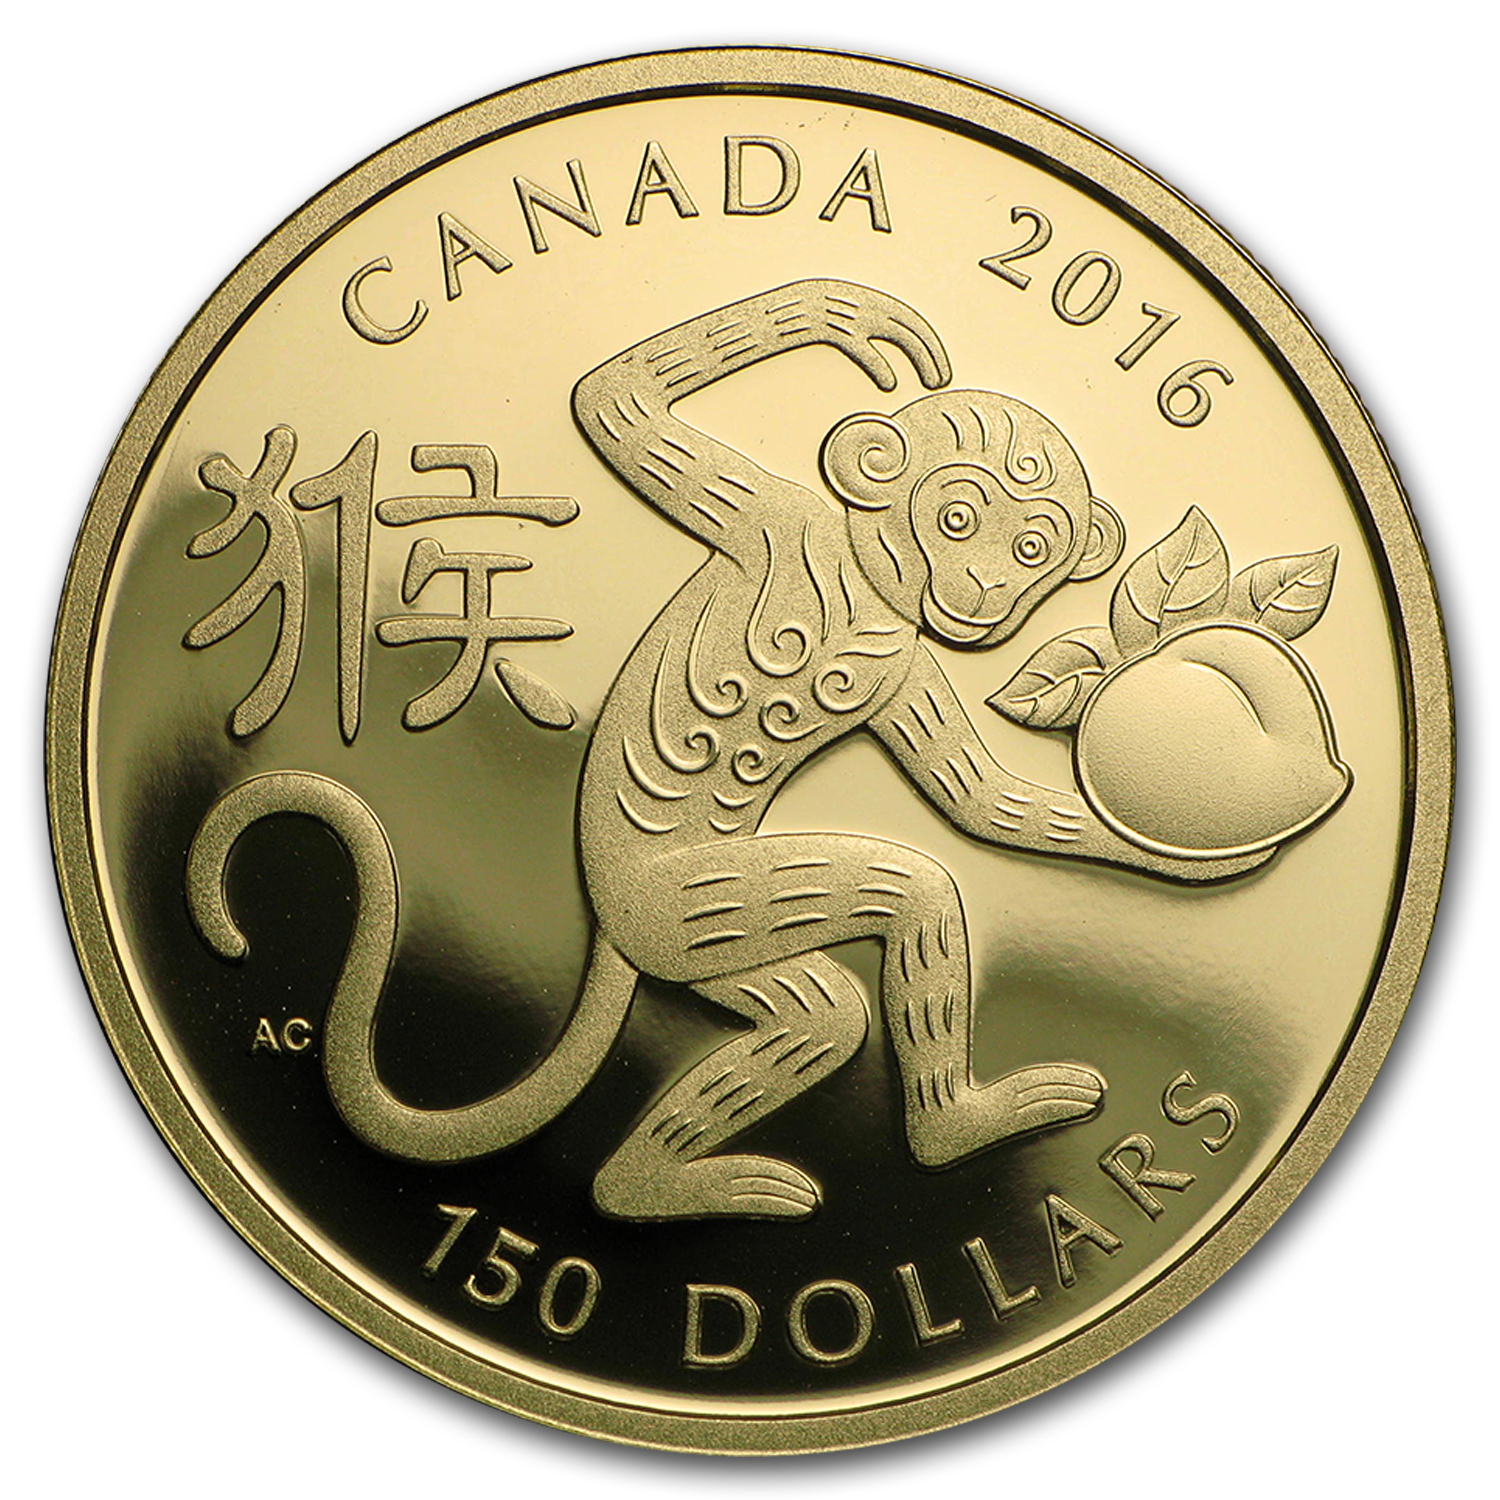 2016 Canada Gold Proof Coin For Sale Year Of The Monkey